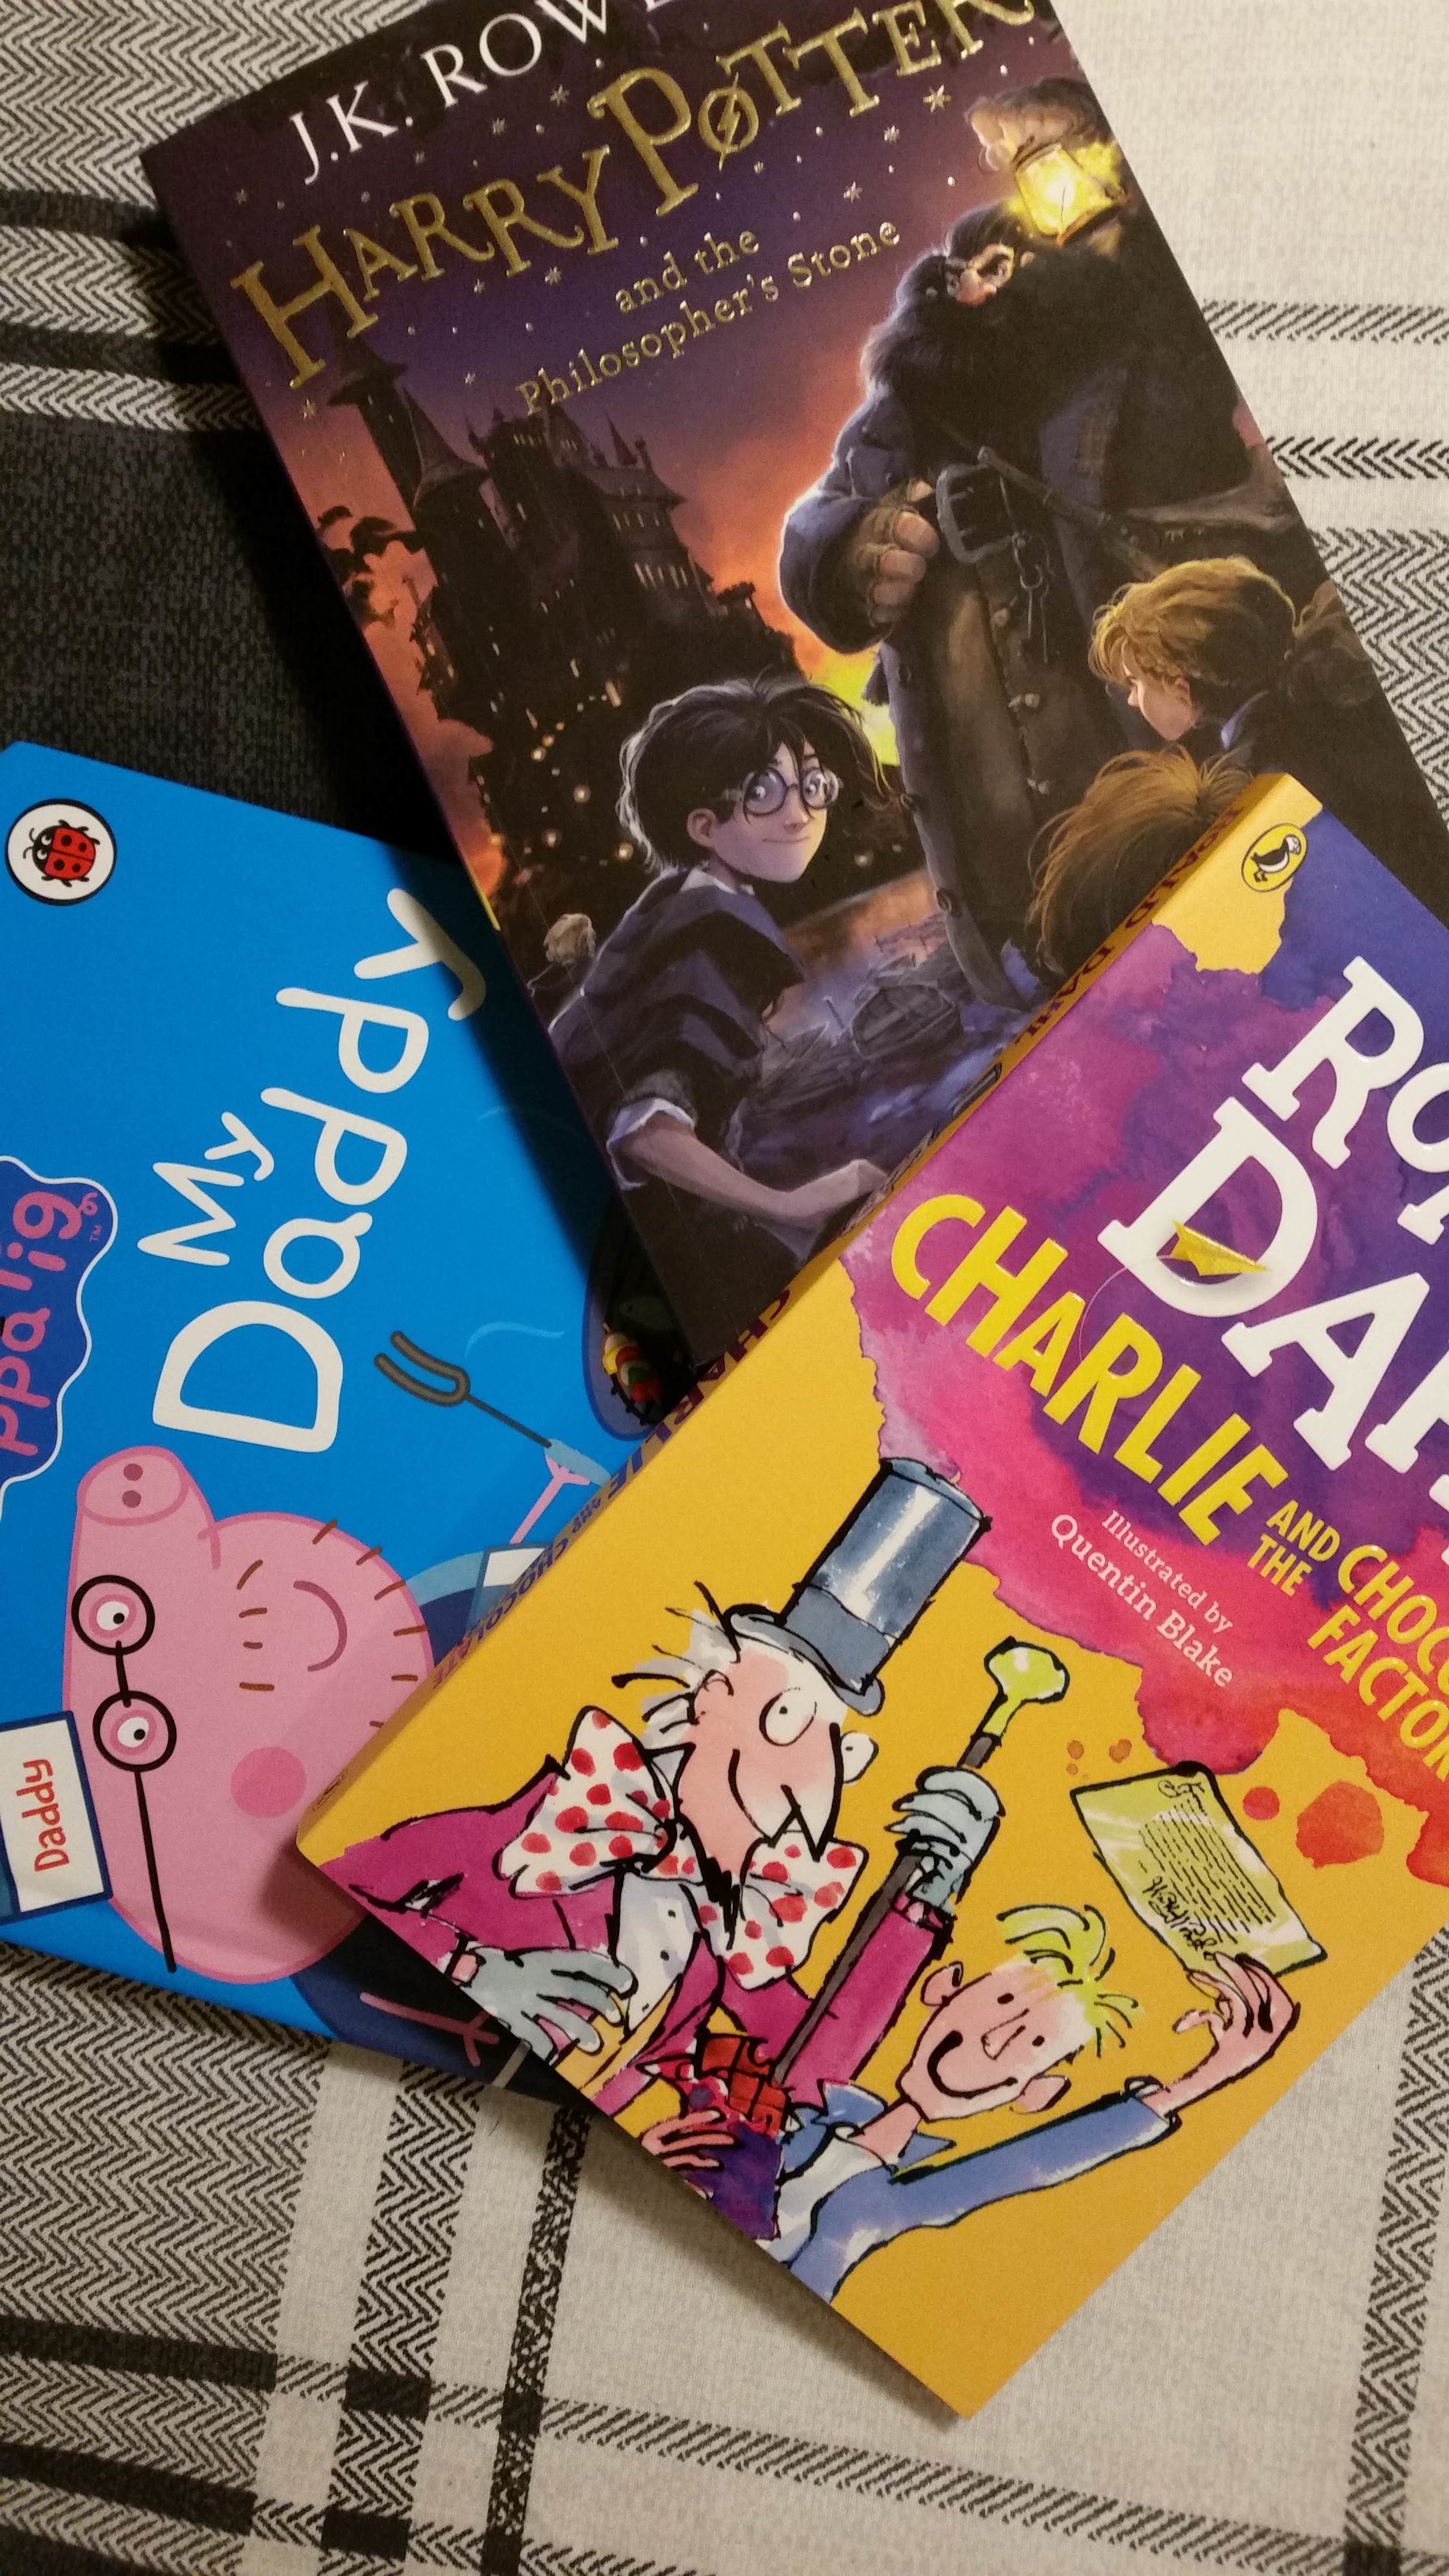 Easy, medium and hard-level English books for my students I'm also bringing Starbursts and Smarties